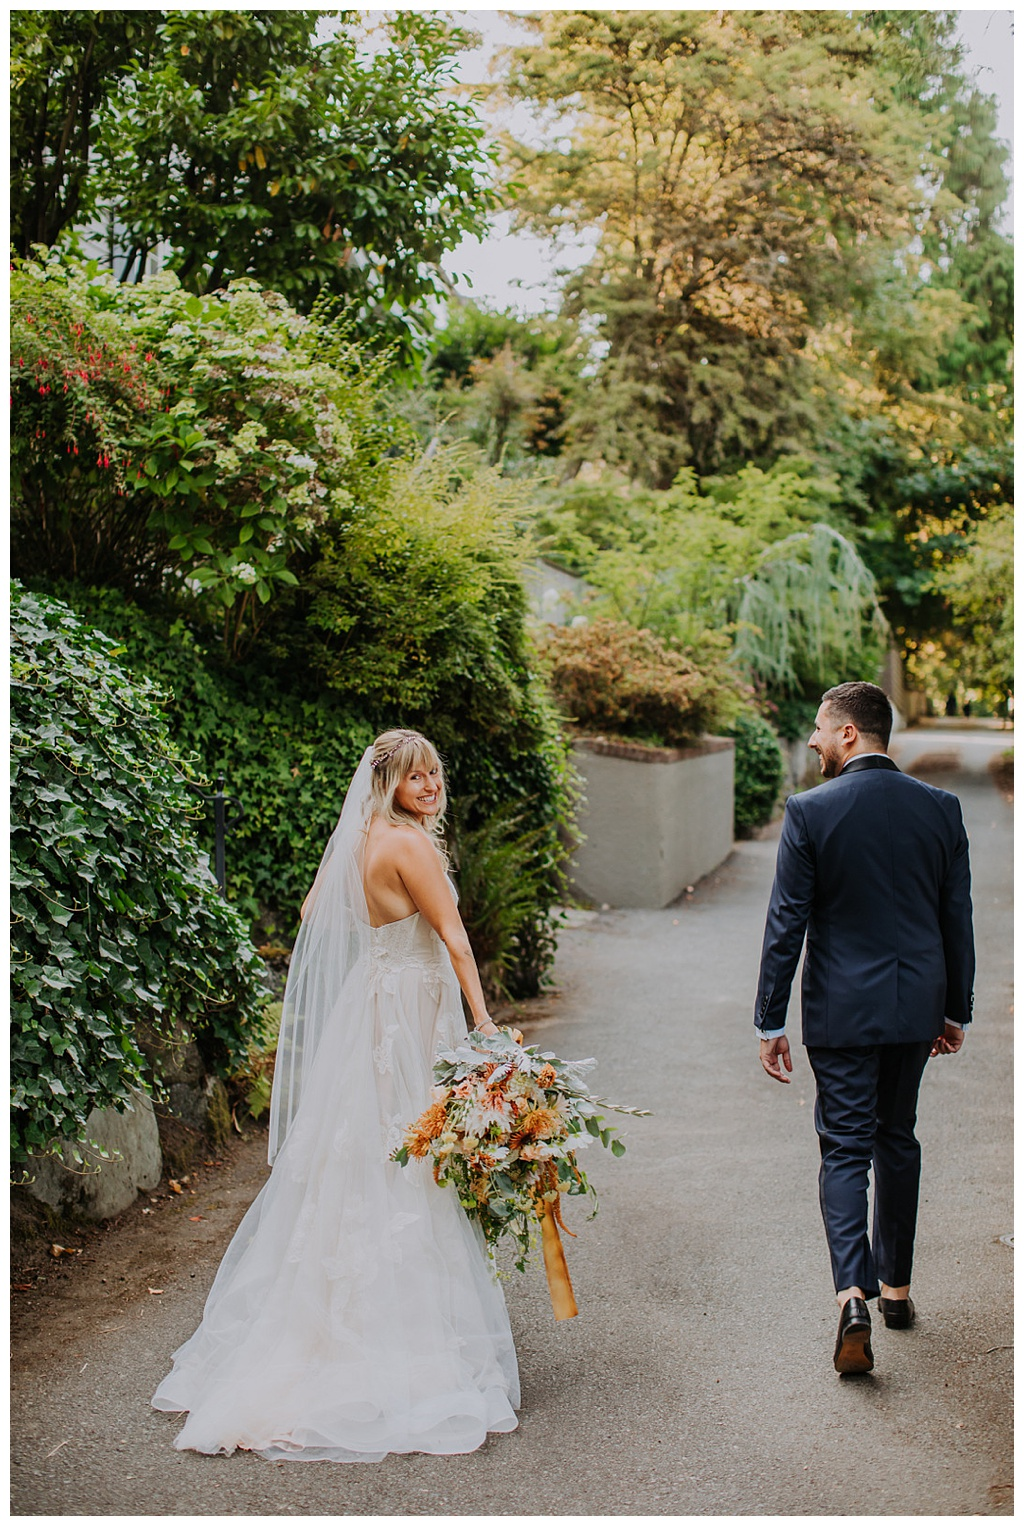 a bride looking behind her shoulder, surrounded by landscaping, holding a bridal bouquet while her groom walks ahead